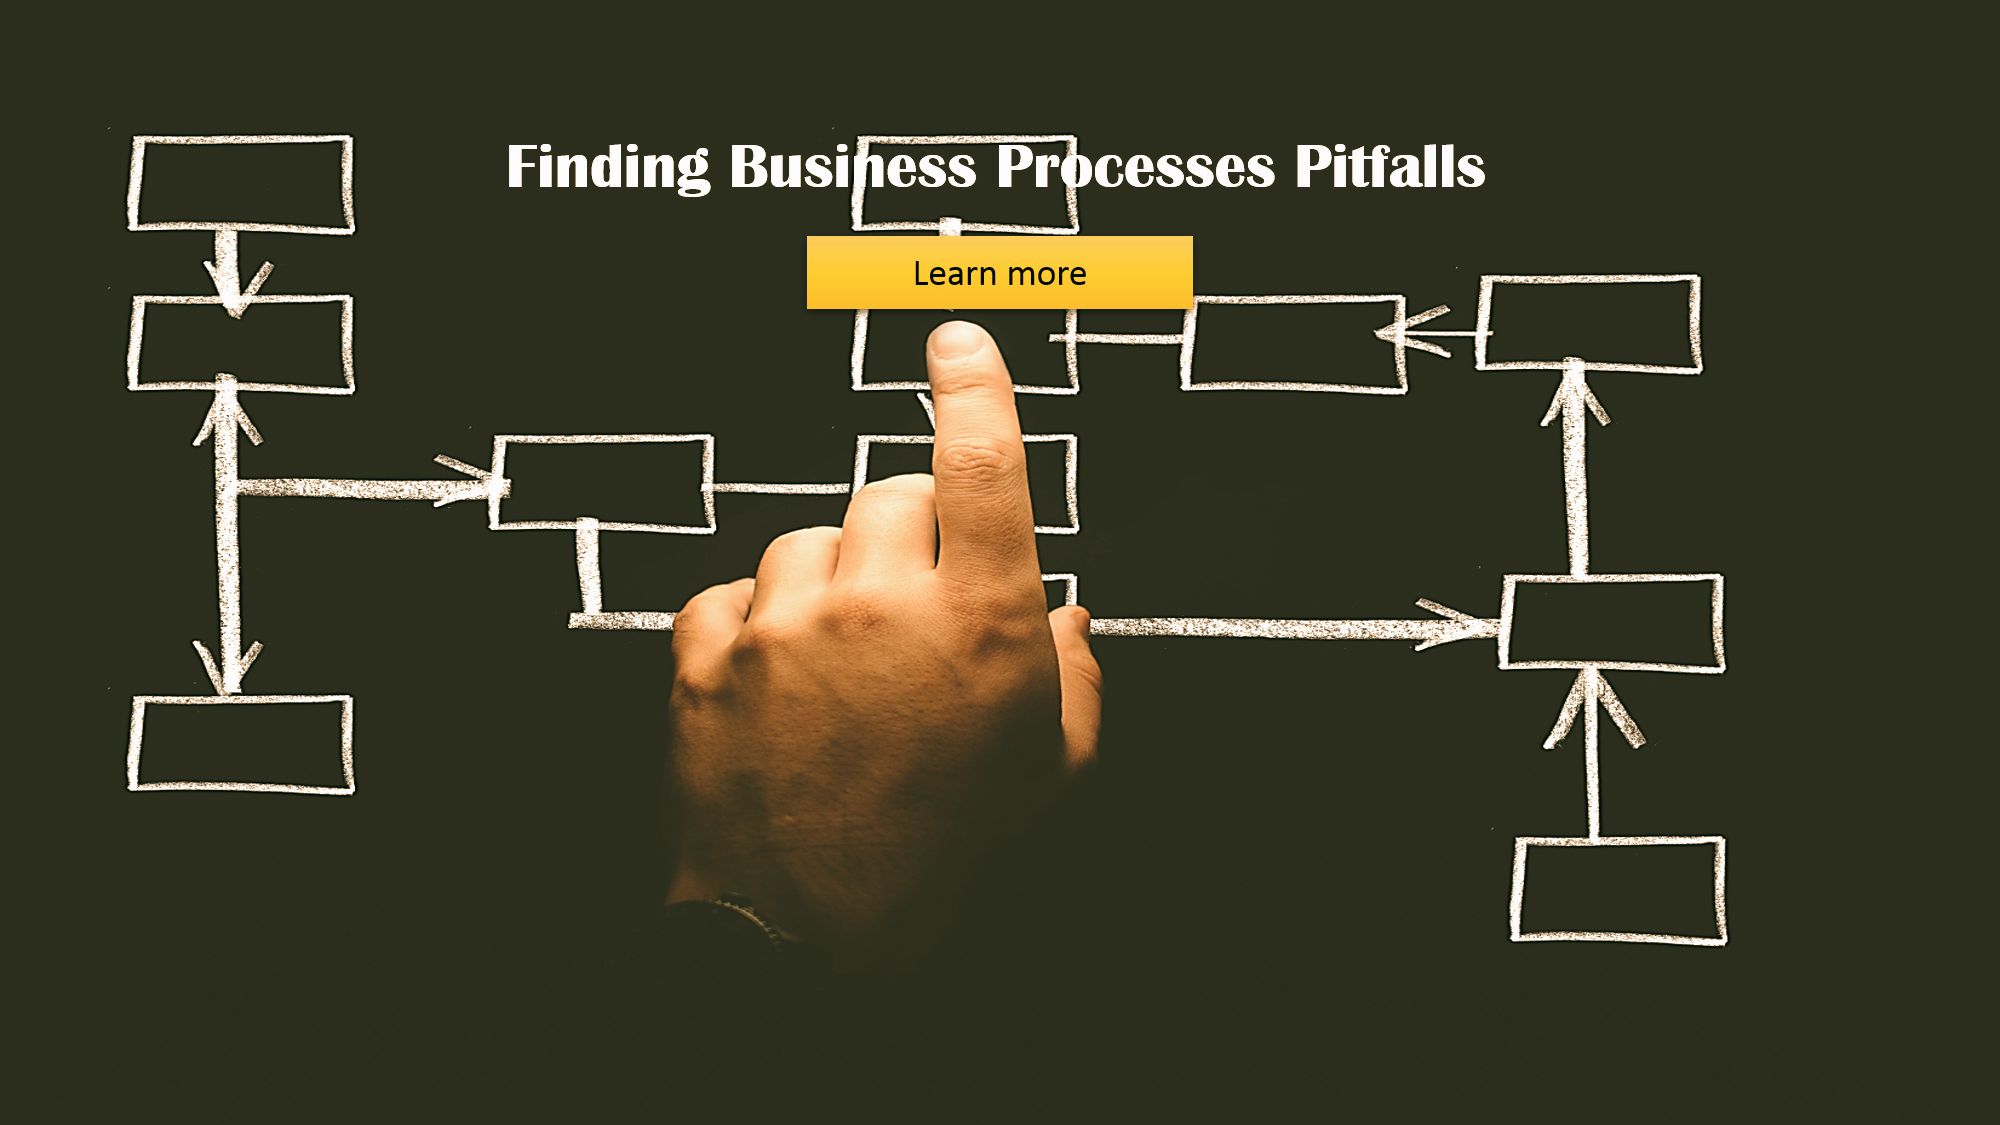 Finding Business Processes Pitfalls_edit